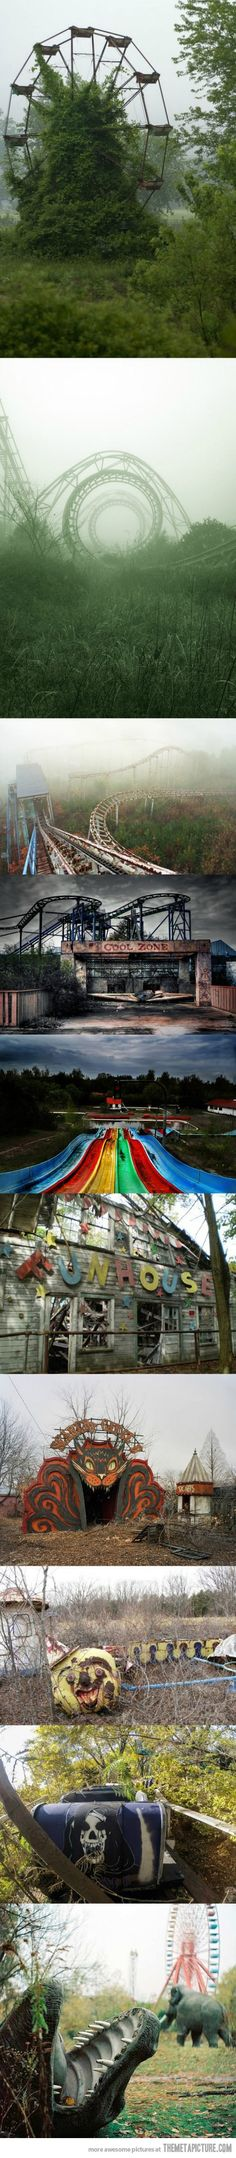 Abandoned amusement parks Abandoned amusement parks on http://seriouslyforreal.com/more/abandoned-amusement-parks11/  Abandoned amusement parks on http://seriouslyforreal.com/more/abandoned-amusement-parks11/